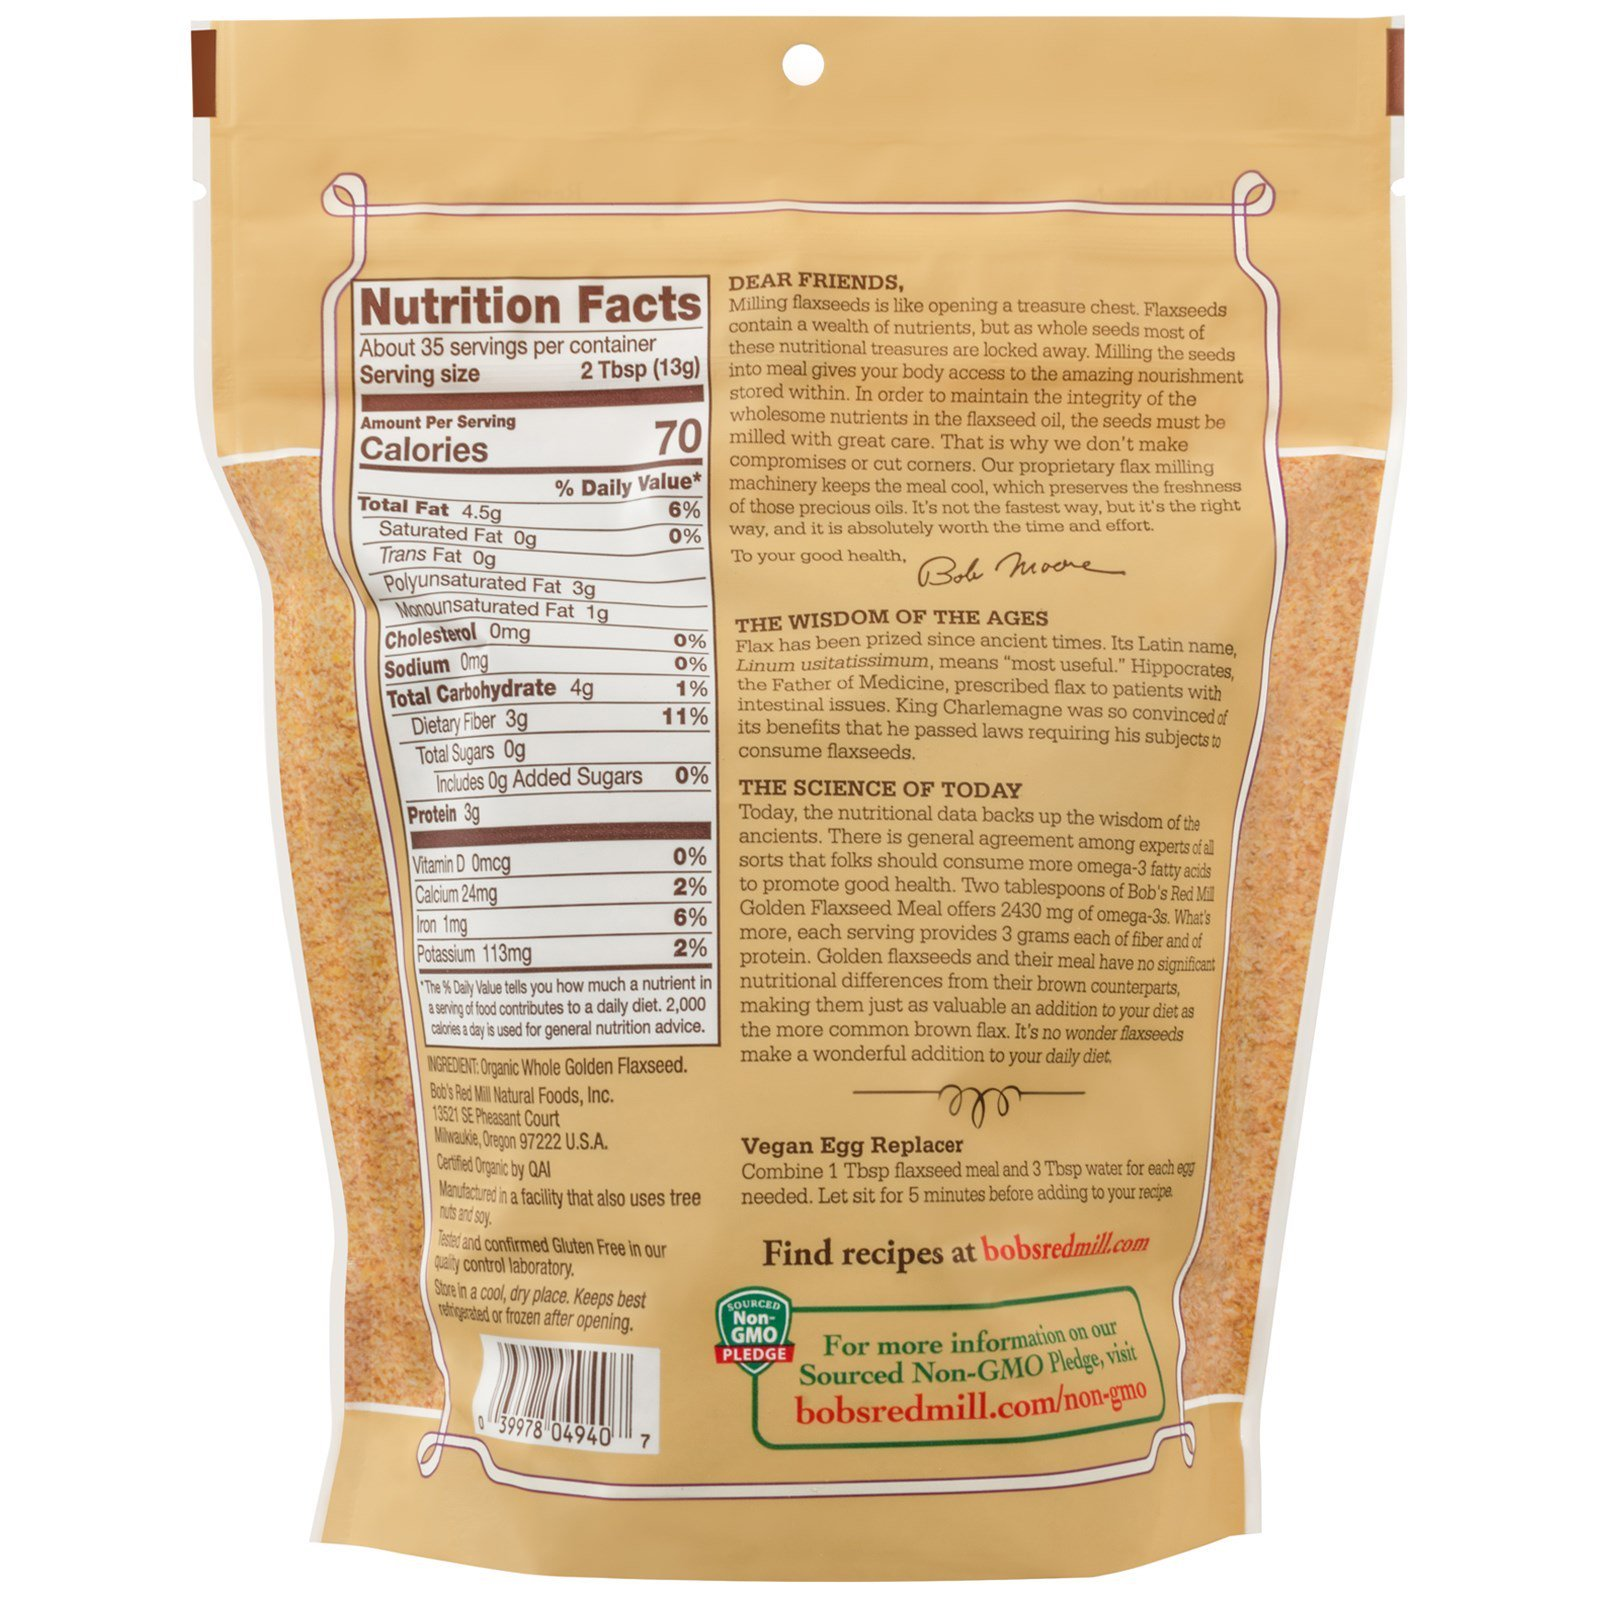 BOB'S RED MILL, Organic Flaxseed Meal, Golden, Pack of 4, Size 16 OZ, (Gluten Free Kosher 95%+ Organic)